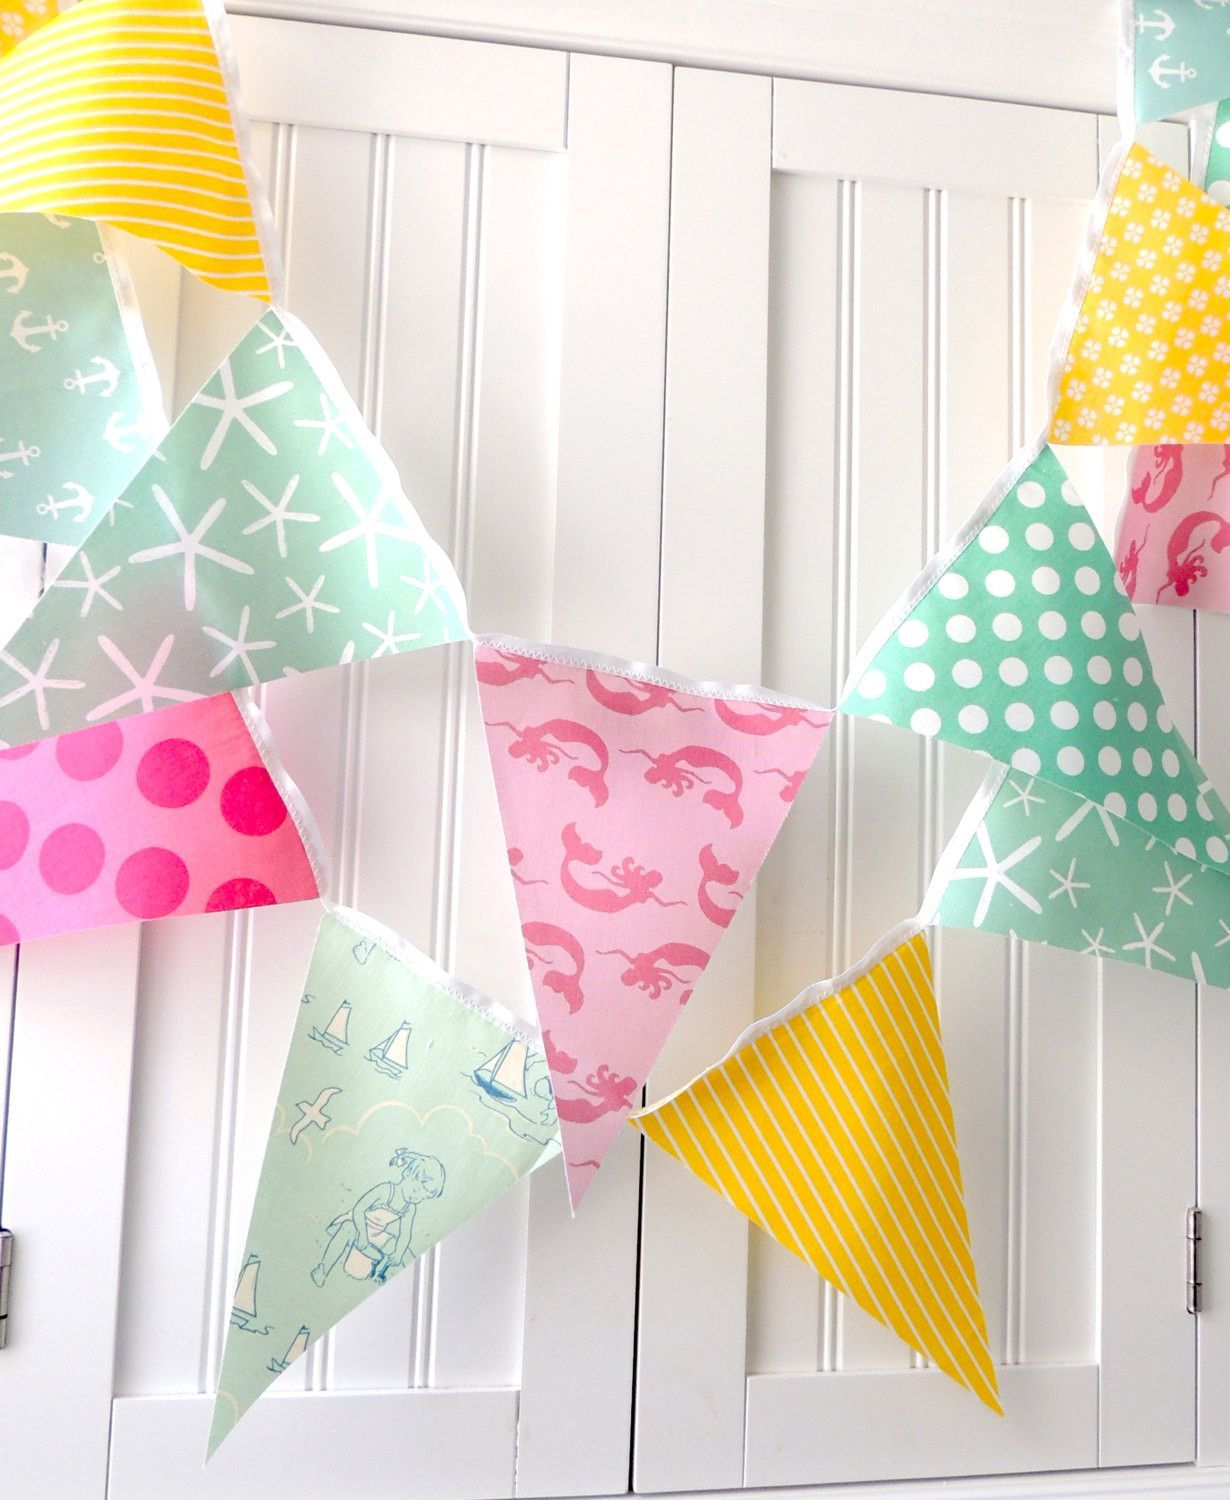 Nautical mermaid bunting banner fabric pennant flags birthday